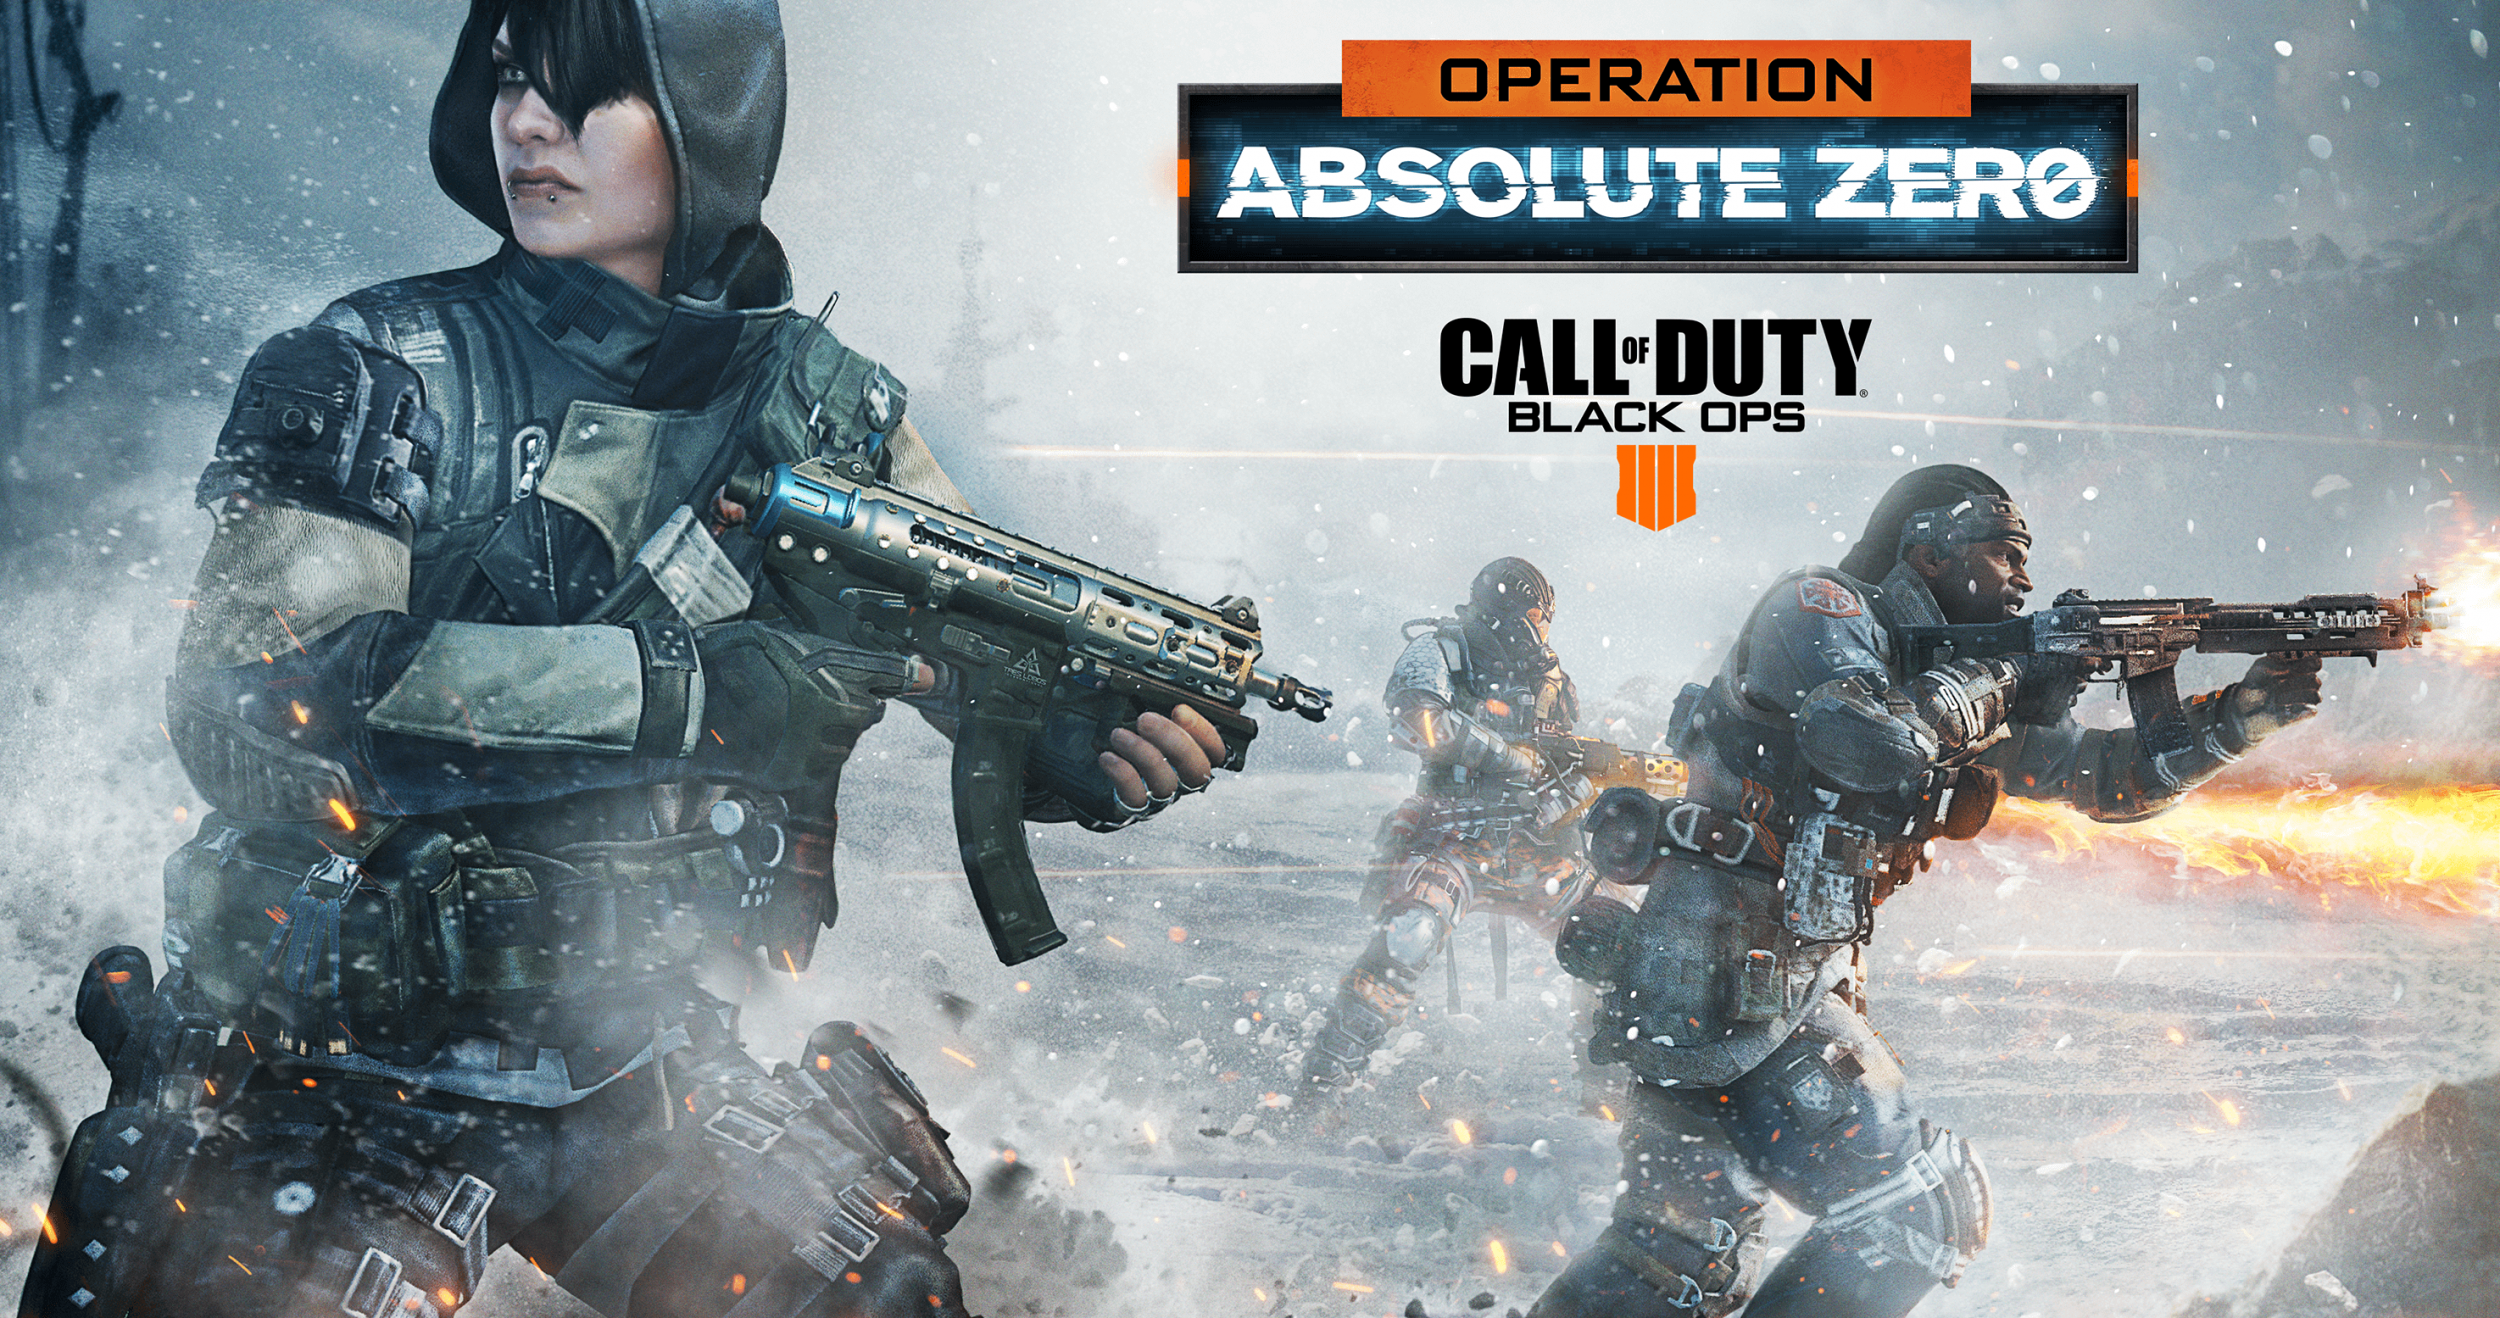 Call of Duty: Black Ops 4' Update 1 09 Adds Absolute Zero Event